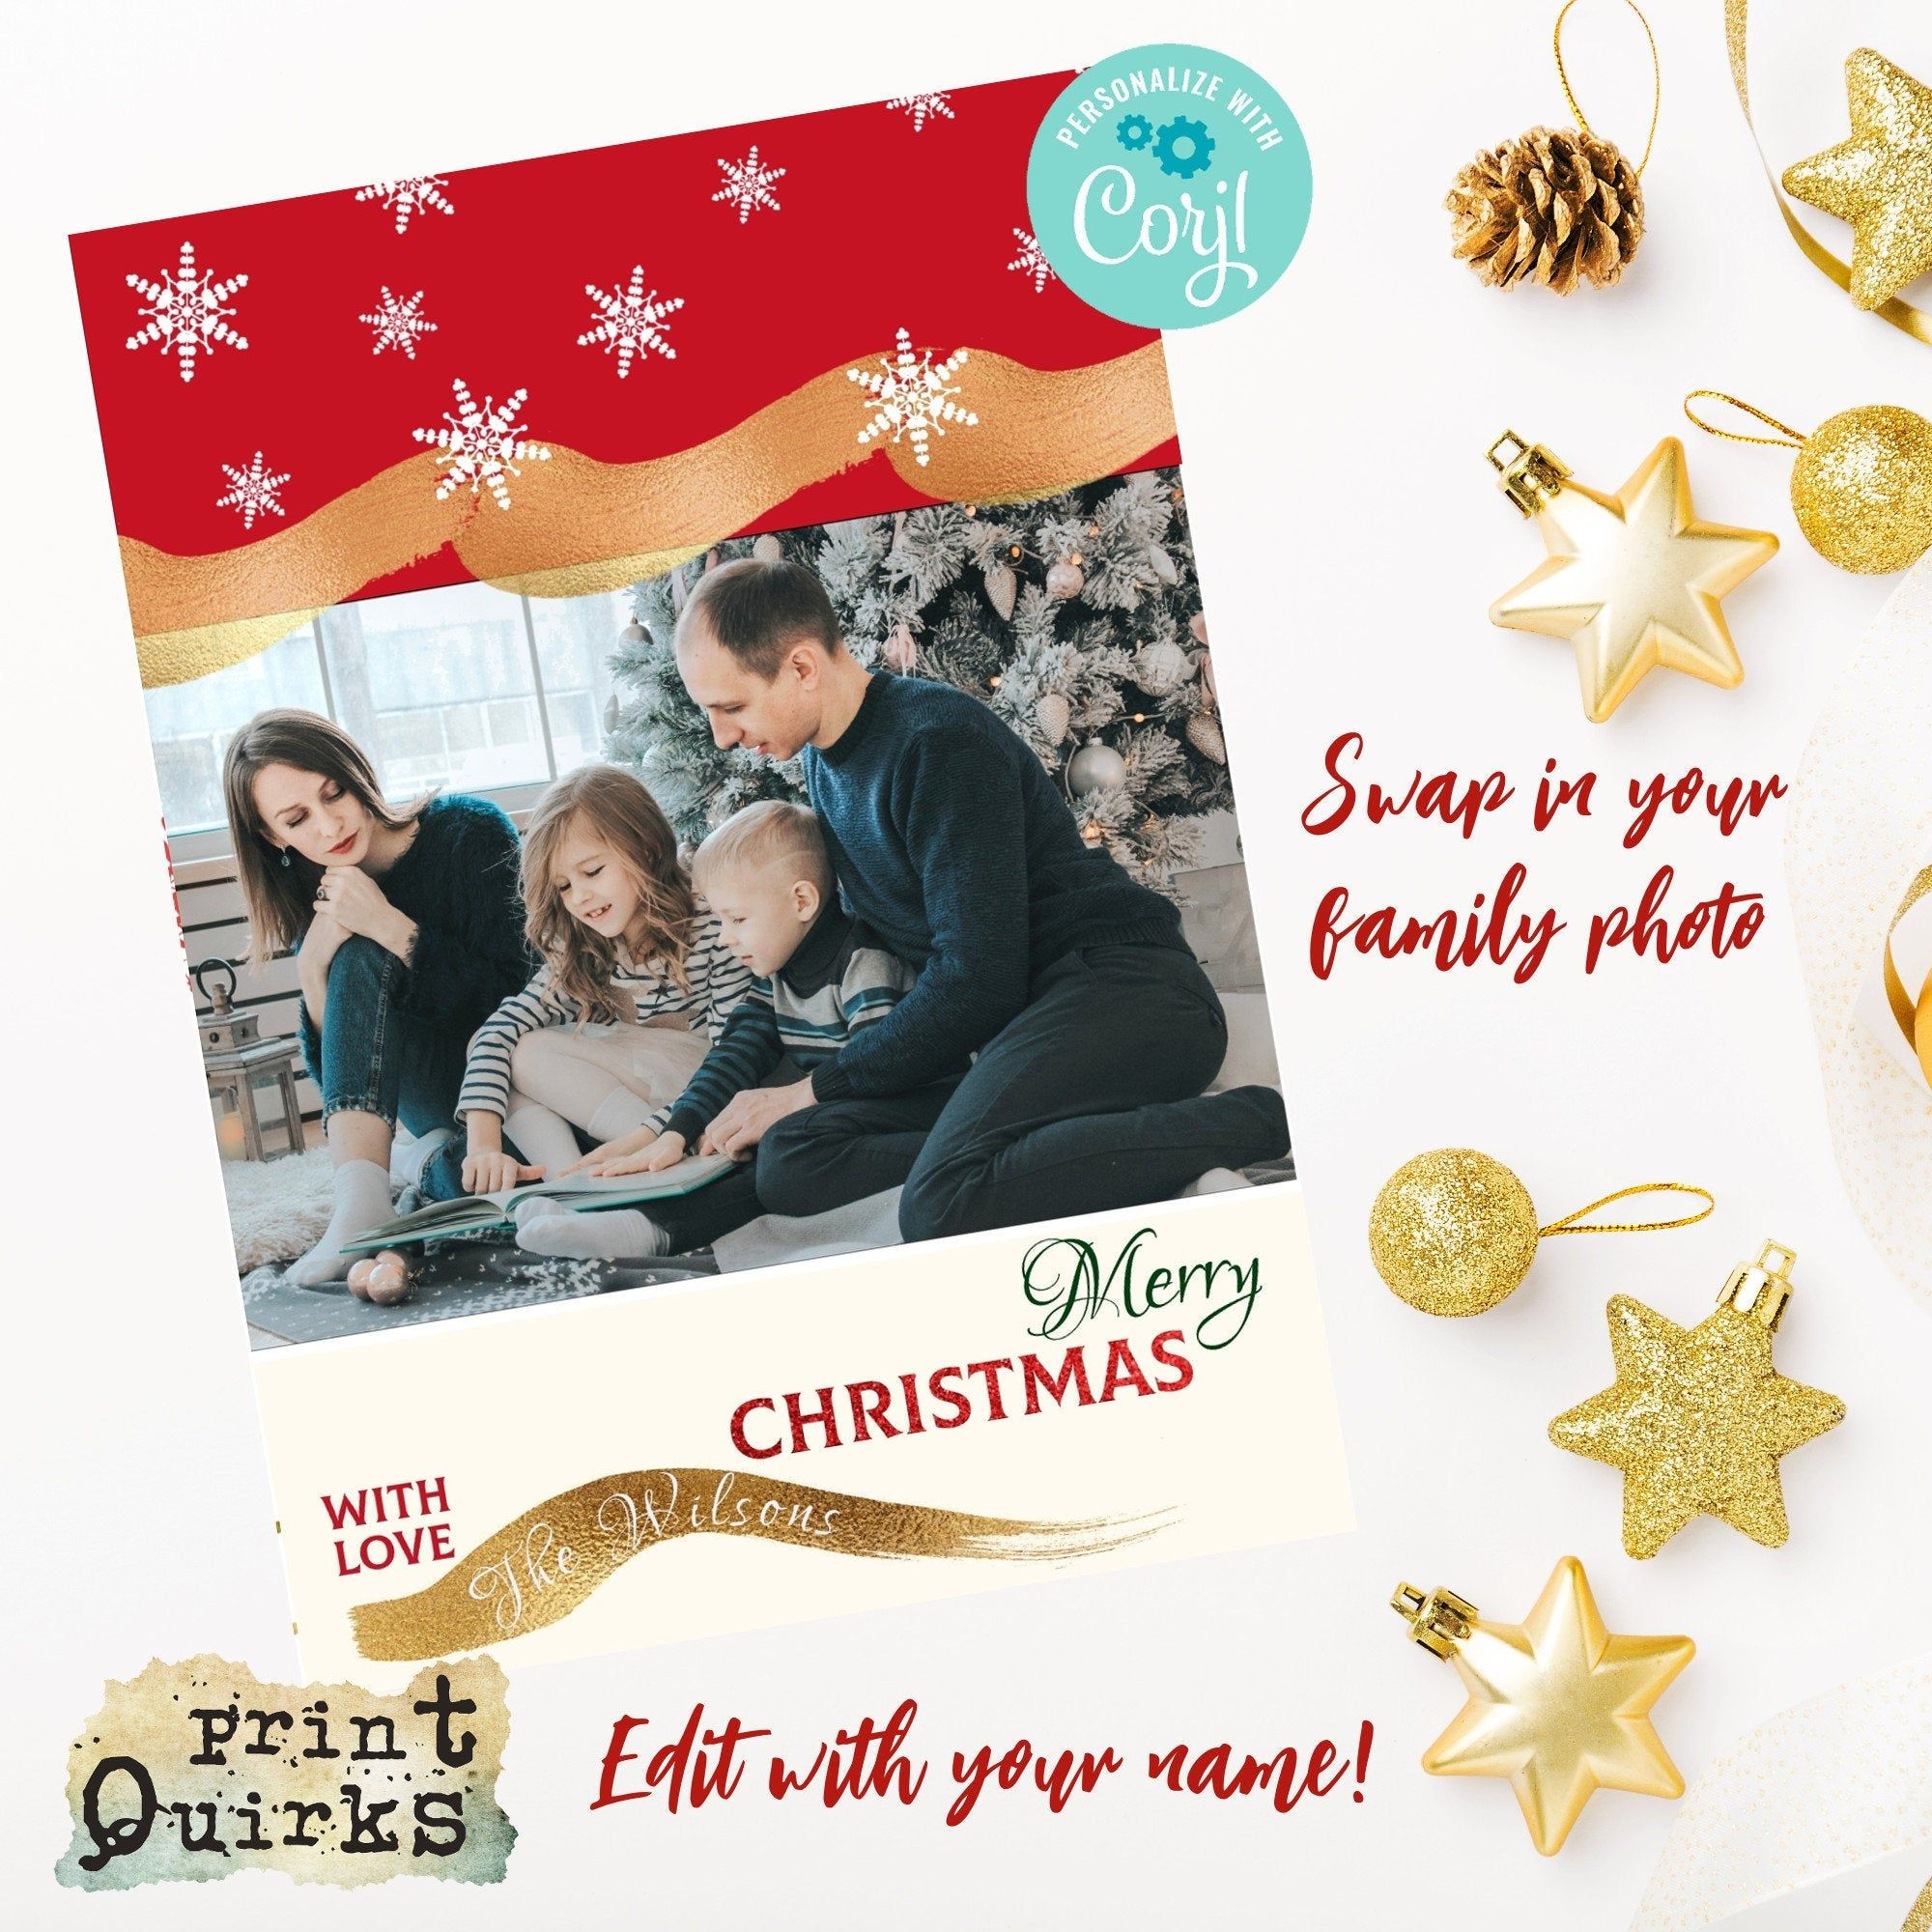 Personalised Christmas Card 5 X 7 Vertical Fold Card Etsy Personalised Christmas Cards Family Christmas Cards Merry Christmas Card